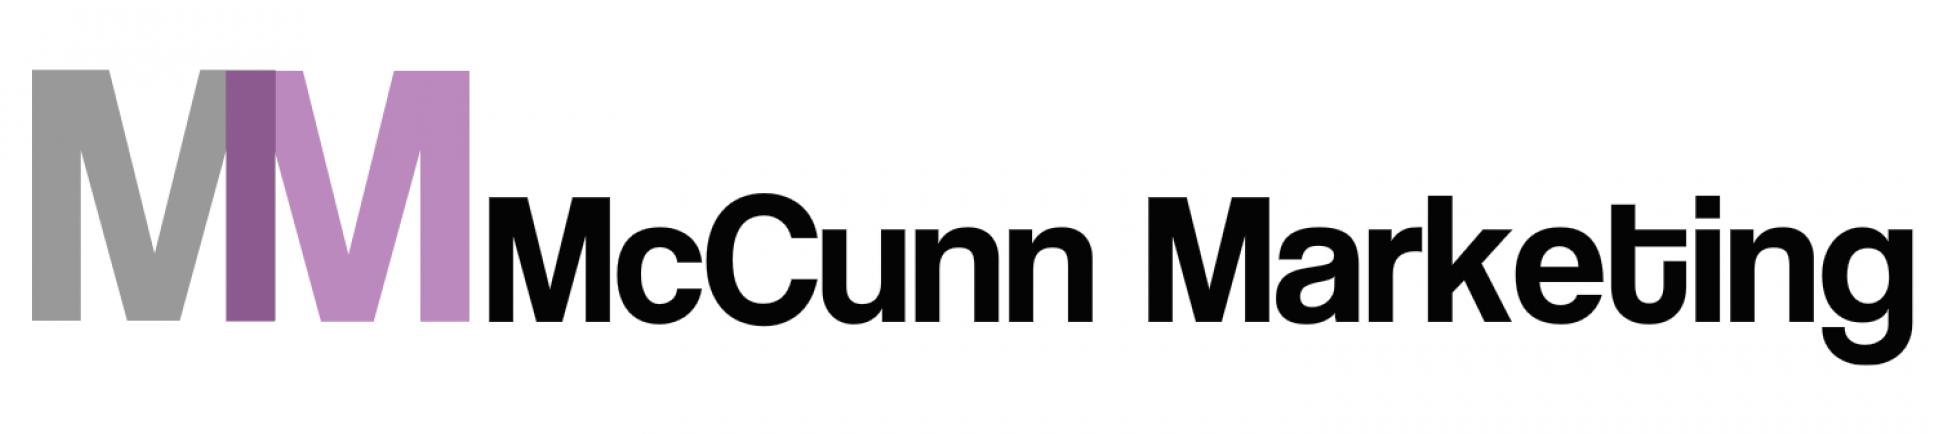 McCunn Marketing